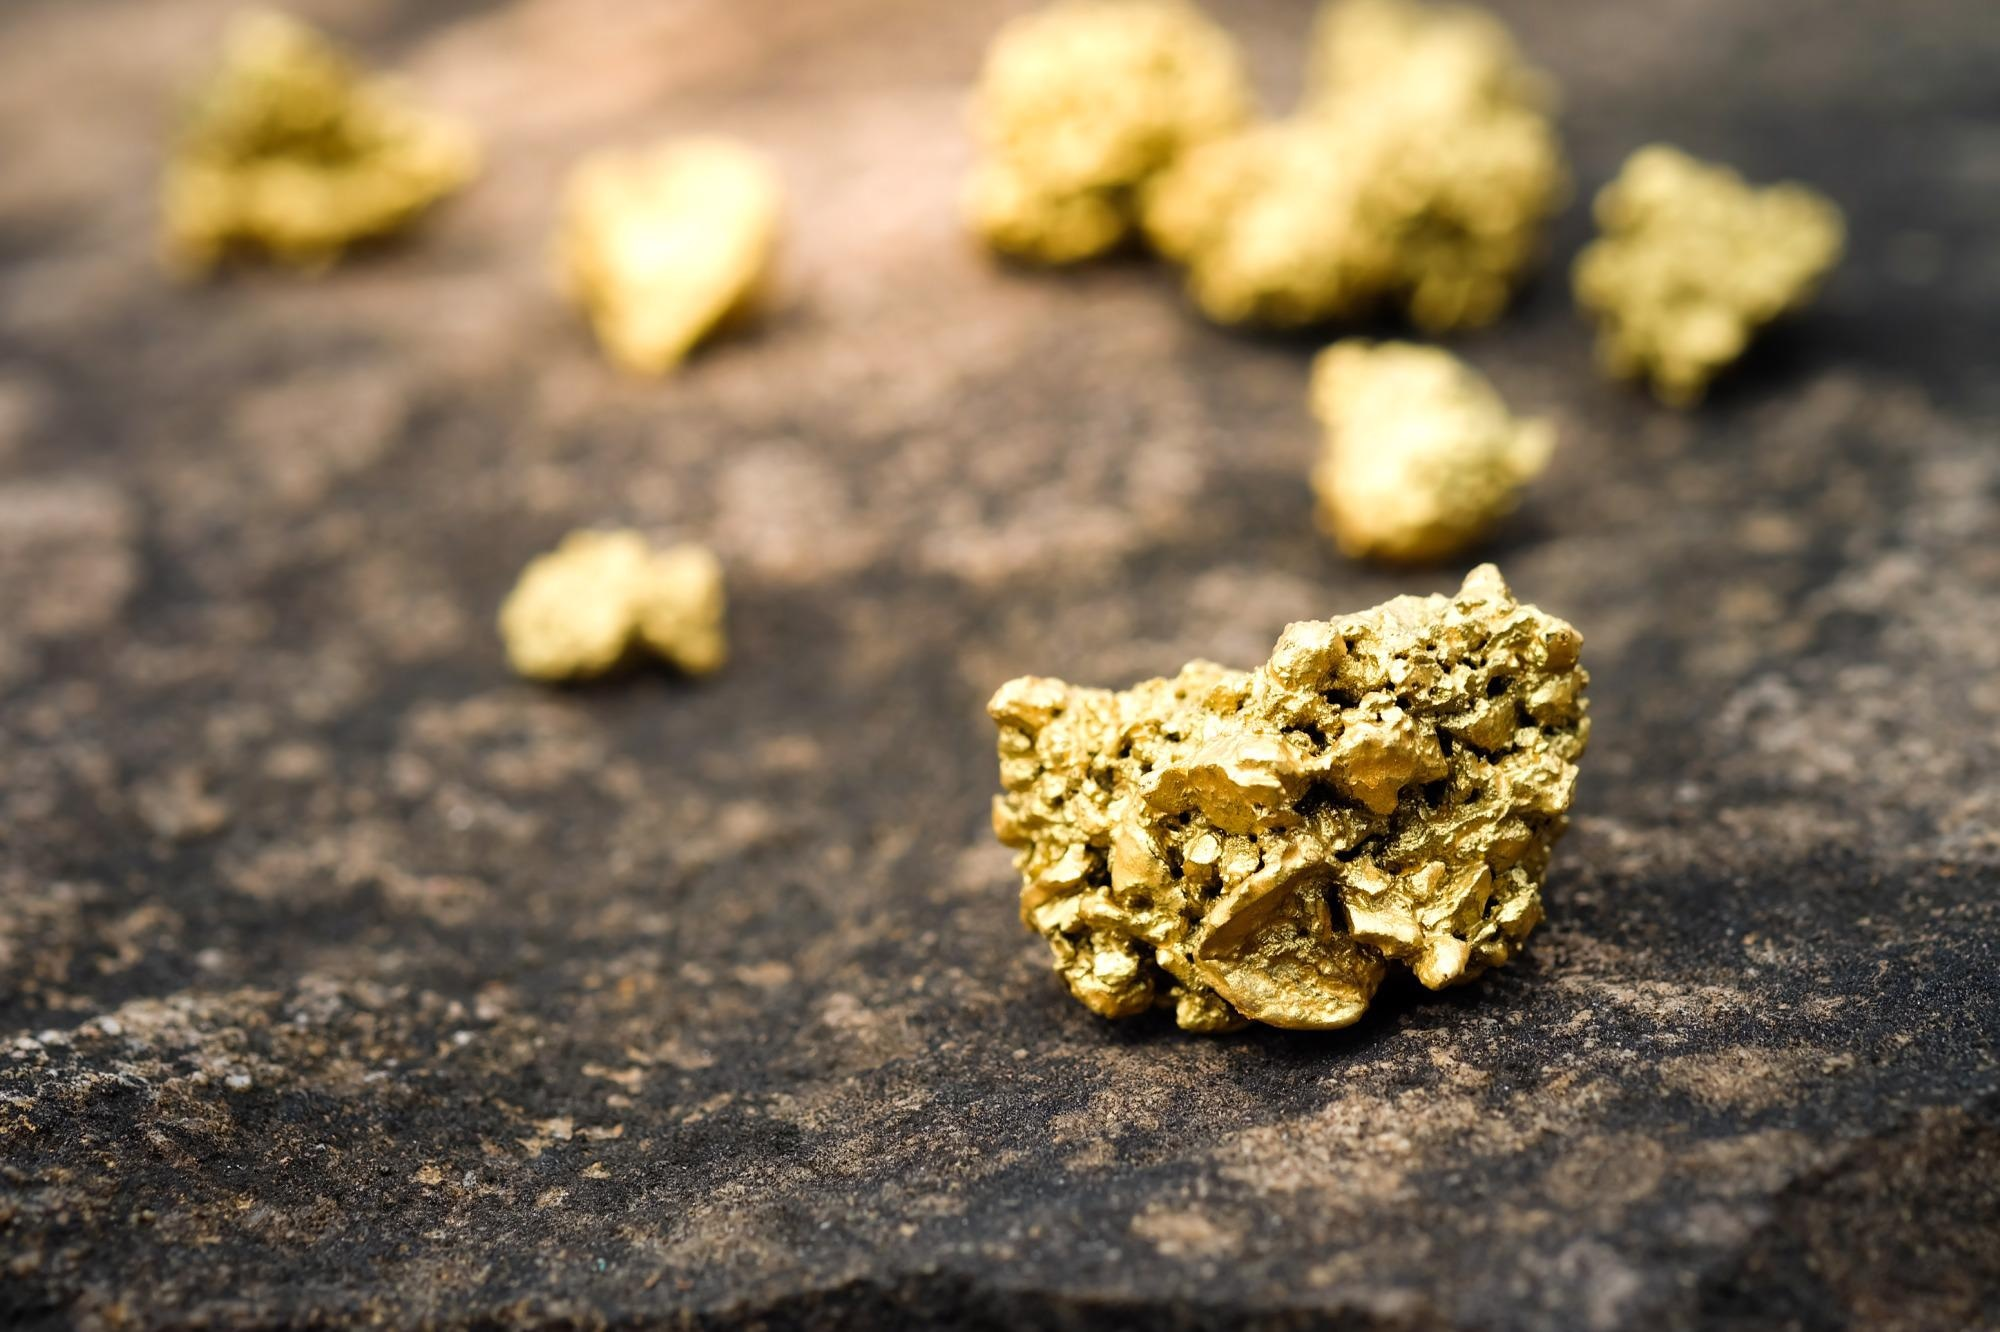 Rio Silver Offers Update on Palta Dorada Gold Property